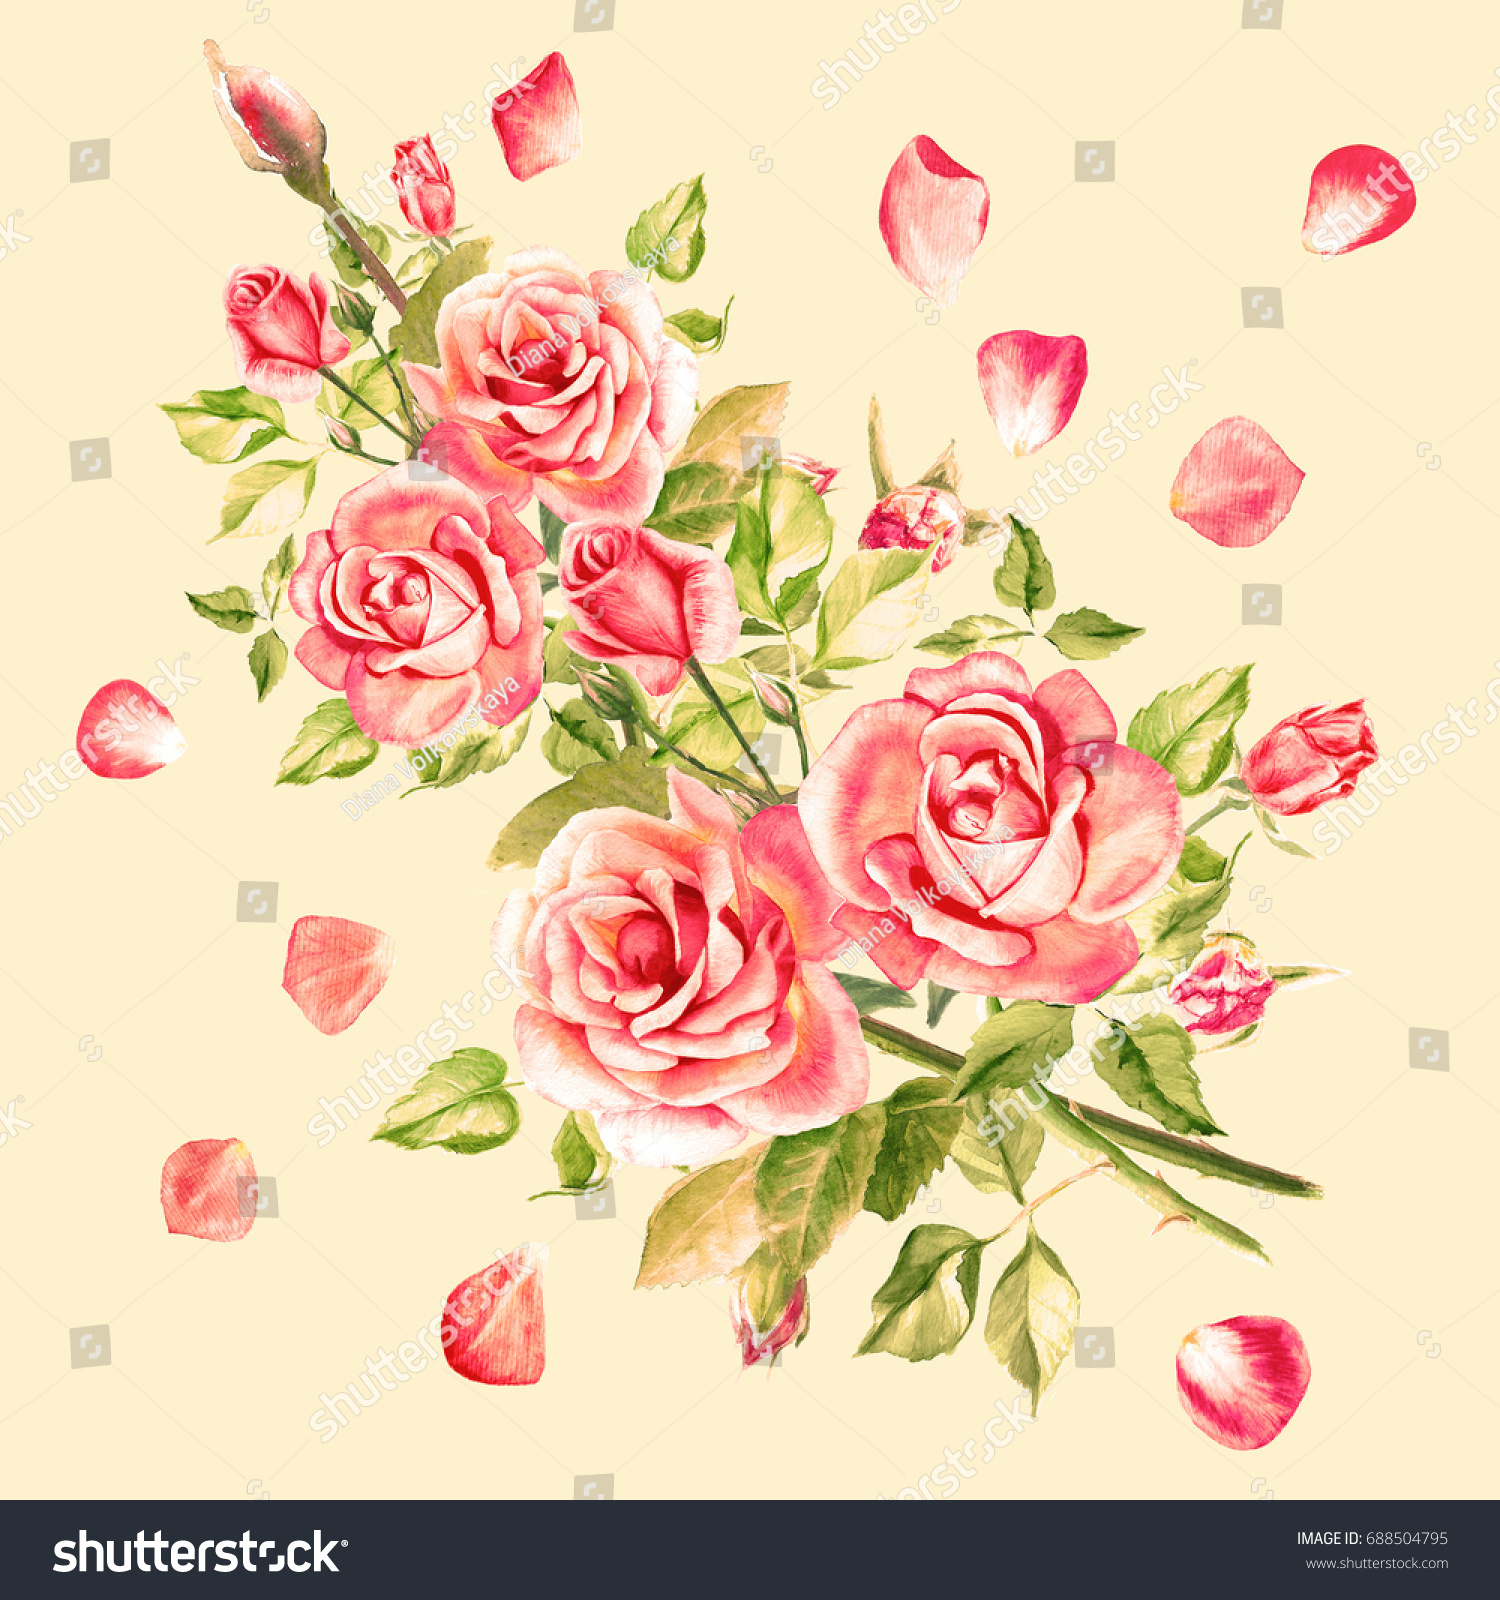 Watercolor Vintage Pink Roses With Rose Petals Bouquet Of Roses